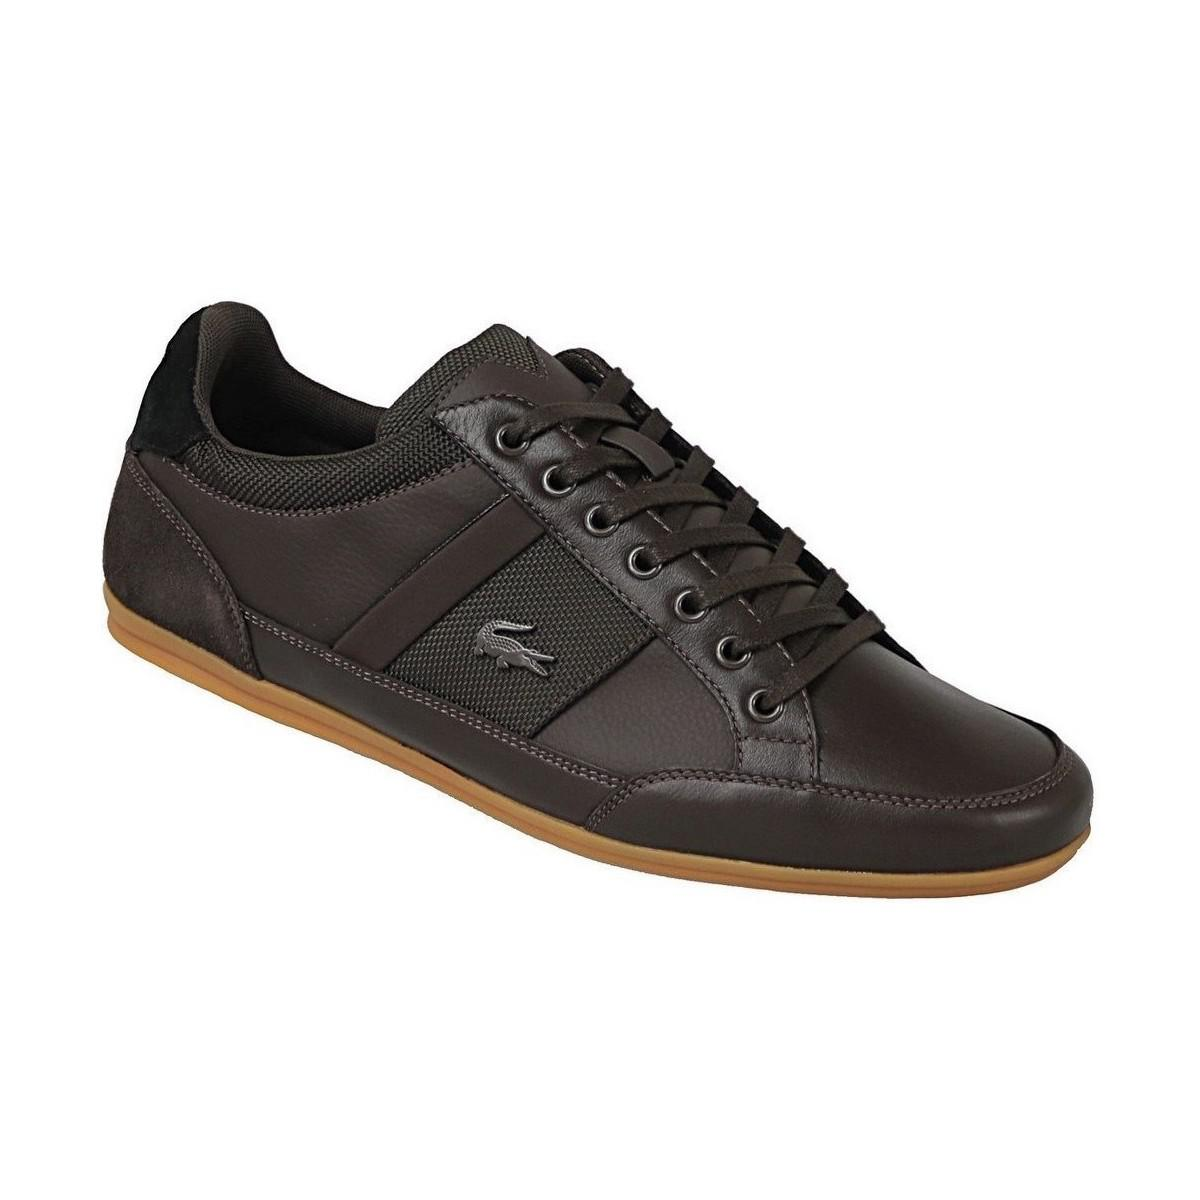 7d52f24c3 Lacoste Chaymon 116 Men s Shoes (trainers) In Brown in Brown for Men ...